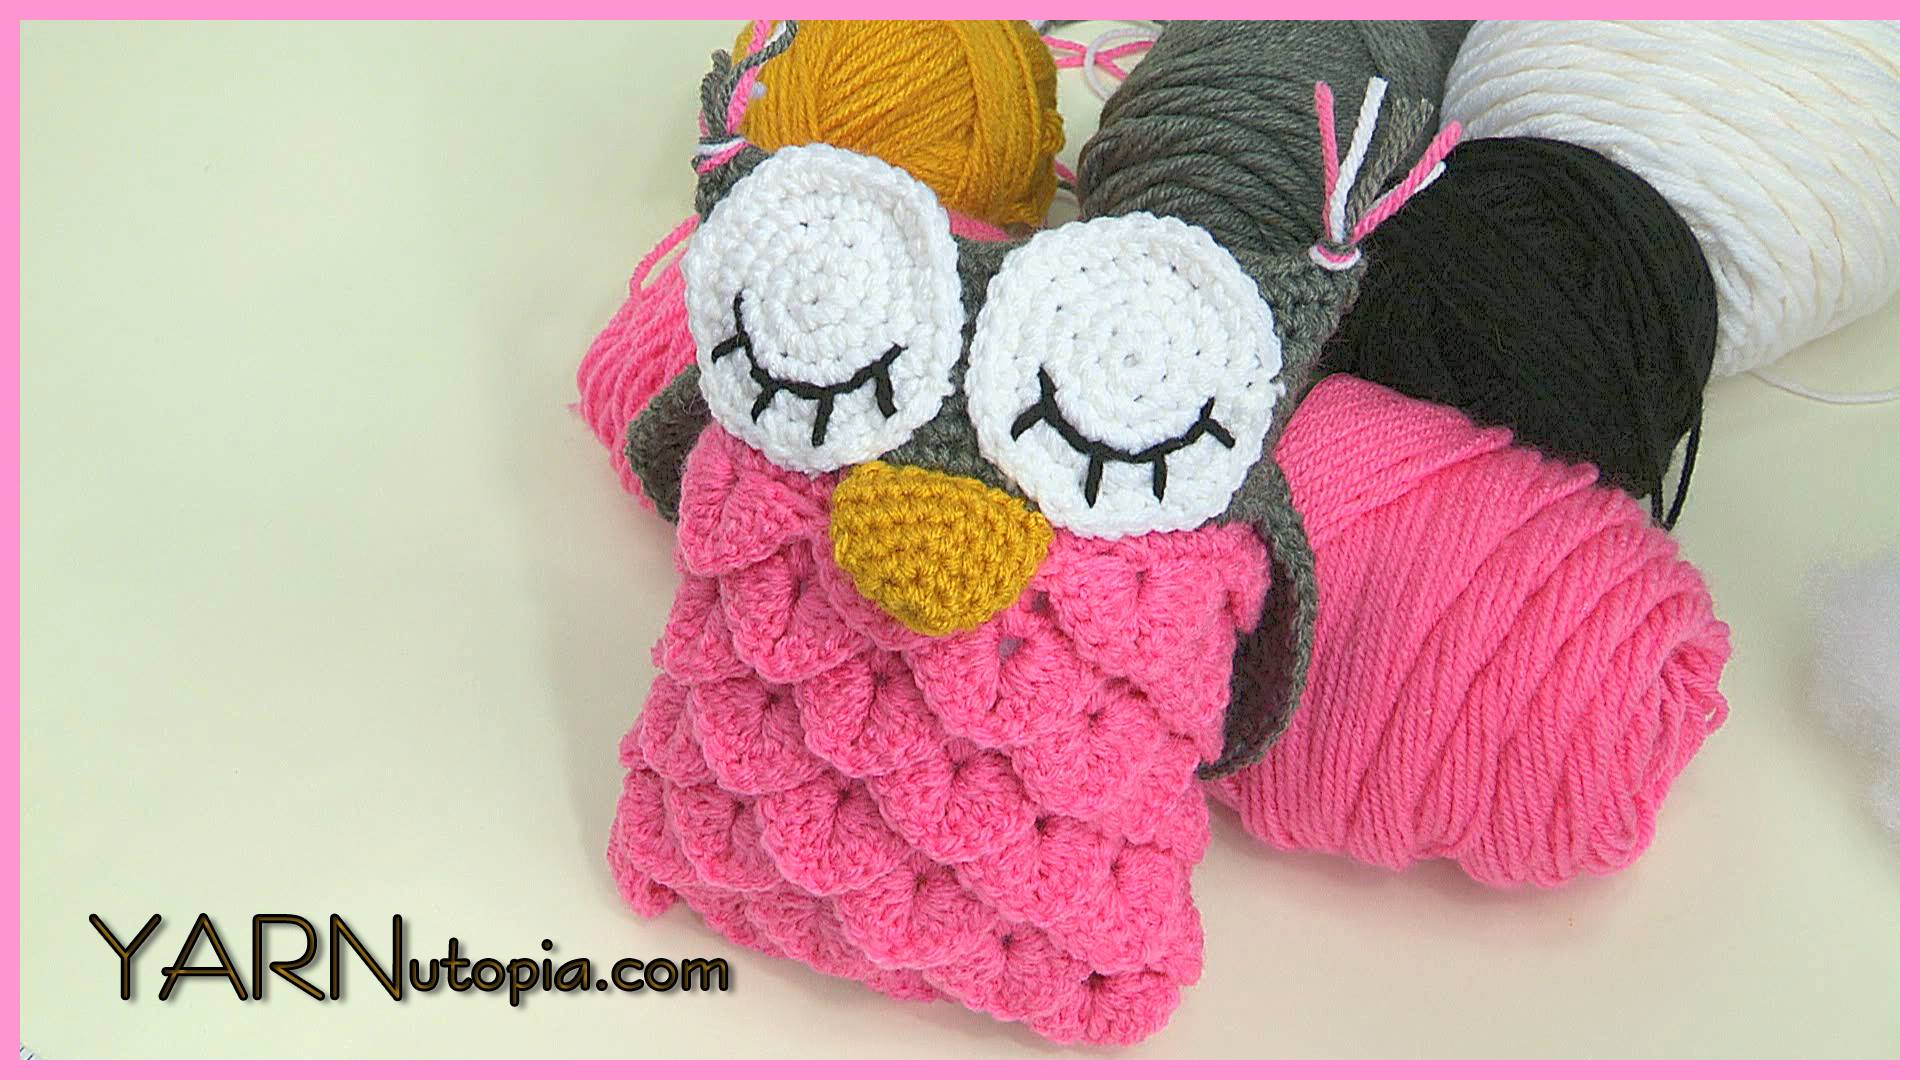 Amigurumi Stitch Tutorial : Crochet tutorial owl amigurumi using the crocodile stitch